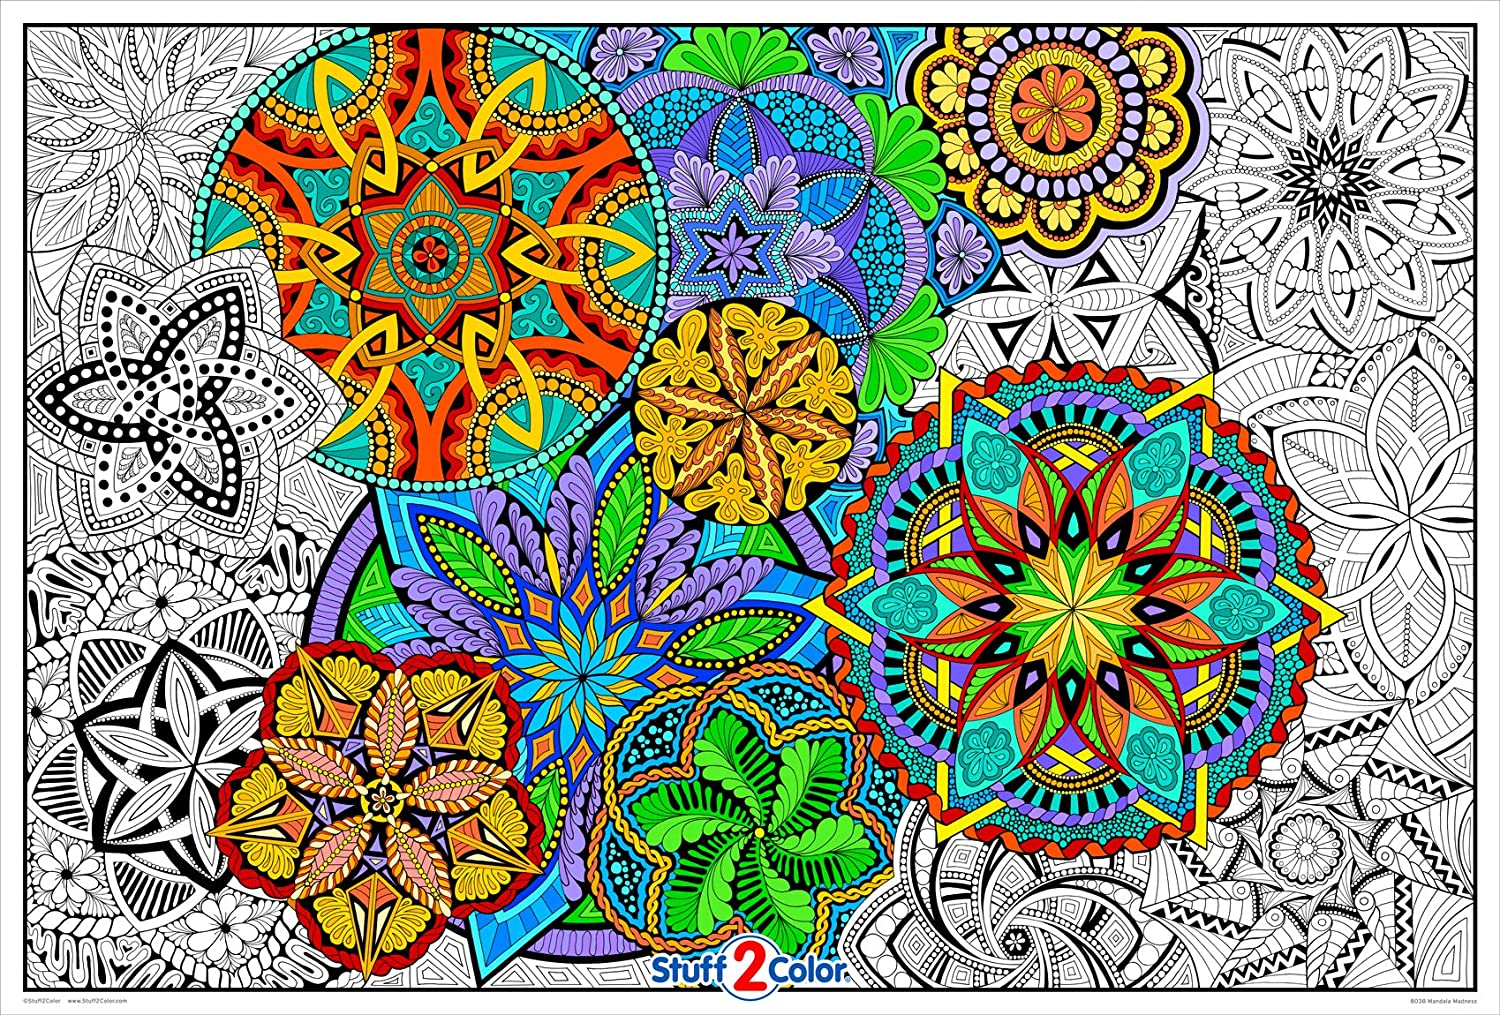 Amazon Com Giant Coloring Poster Mandala Madness For Kids And Adults Great For Family Time Girls Boys Arts And Crafts Adults Care Facilities Schools And Group Activities Posters Prints